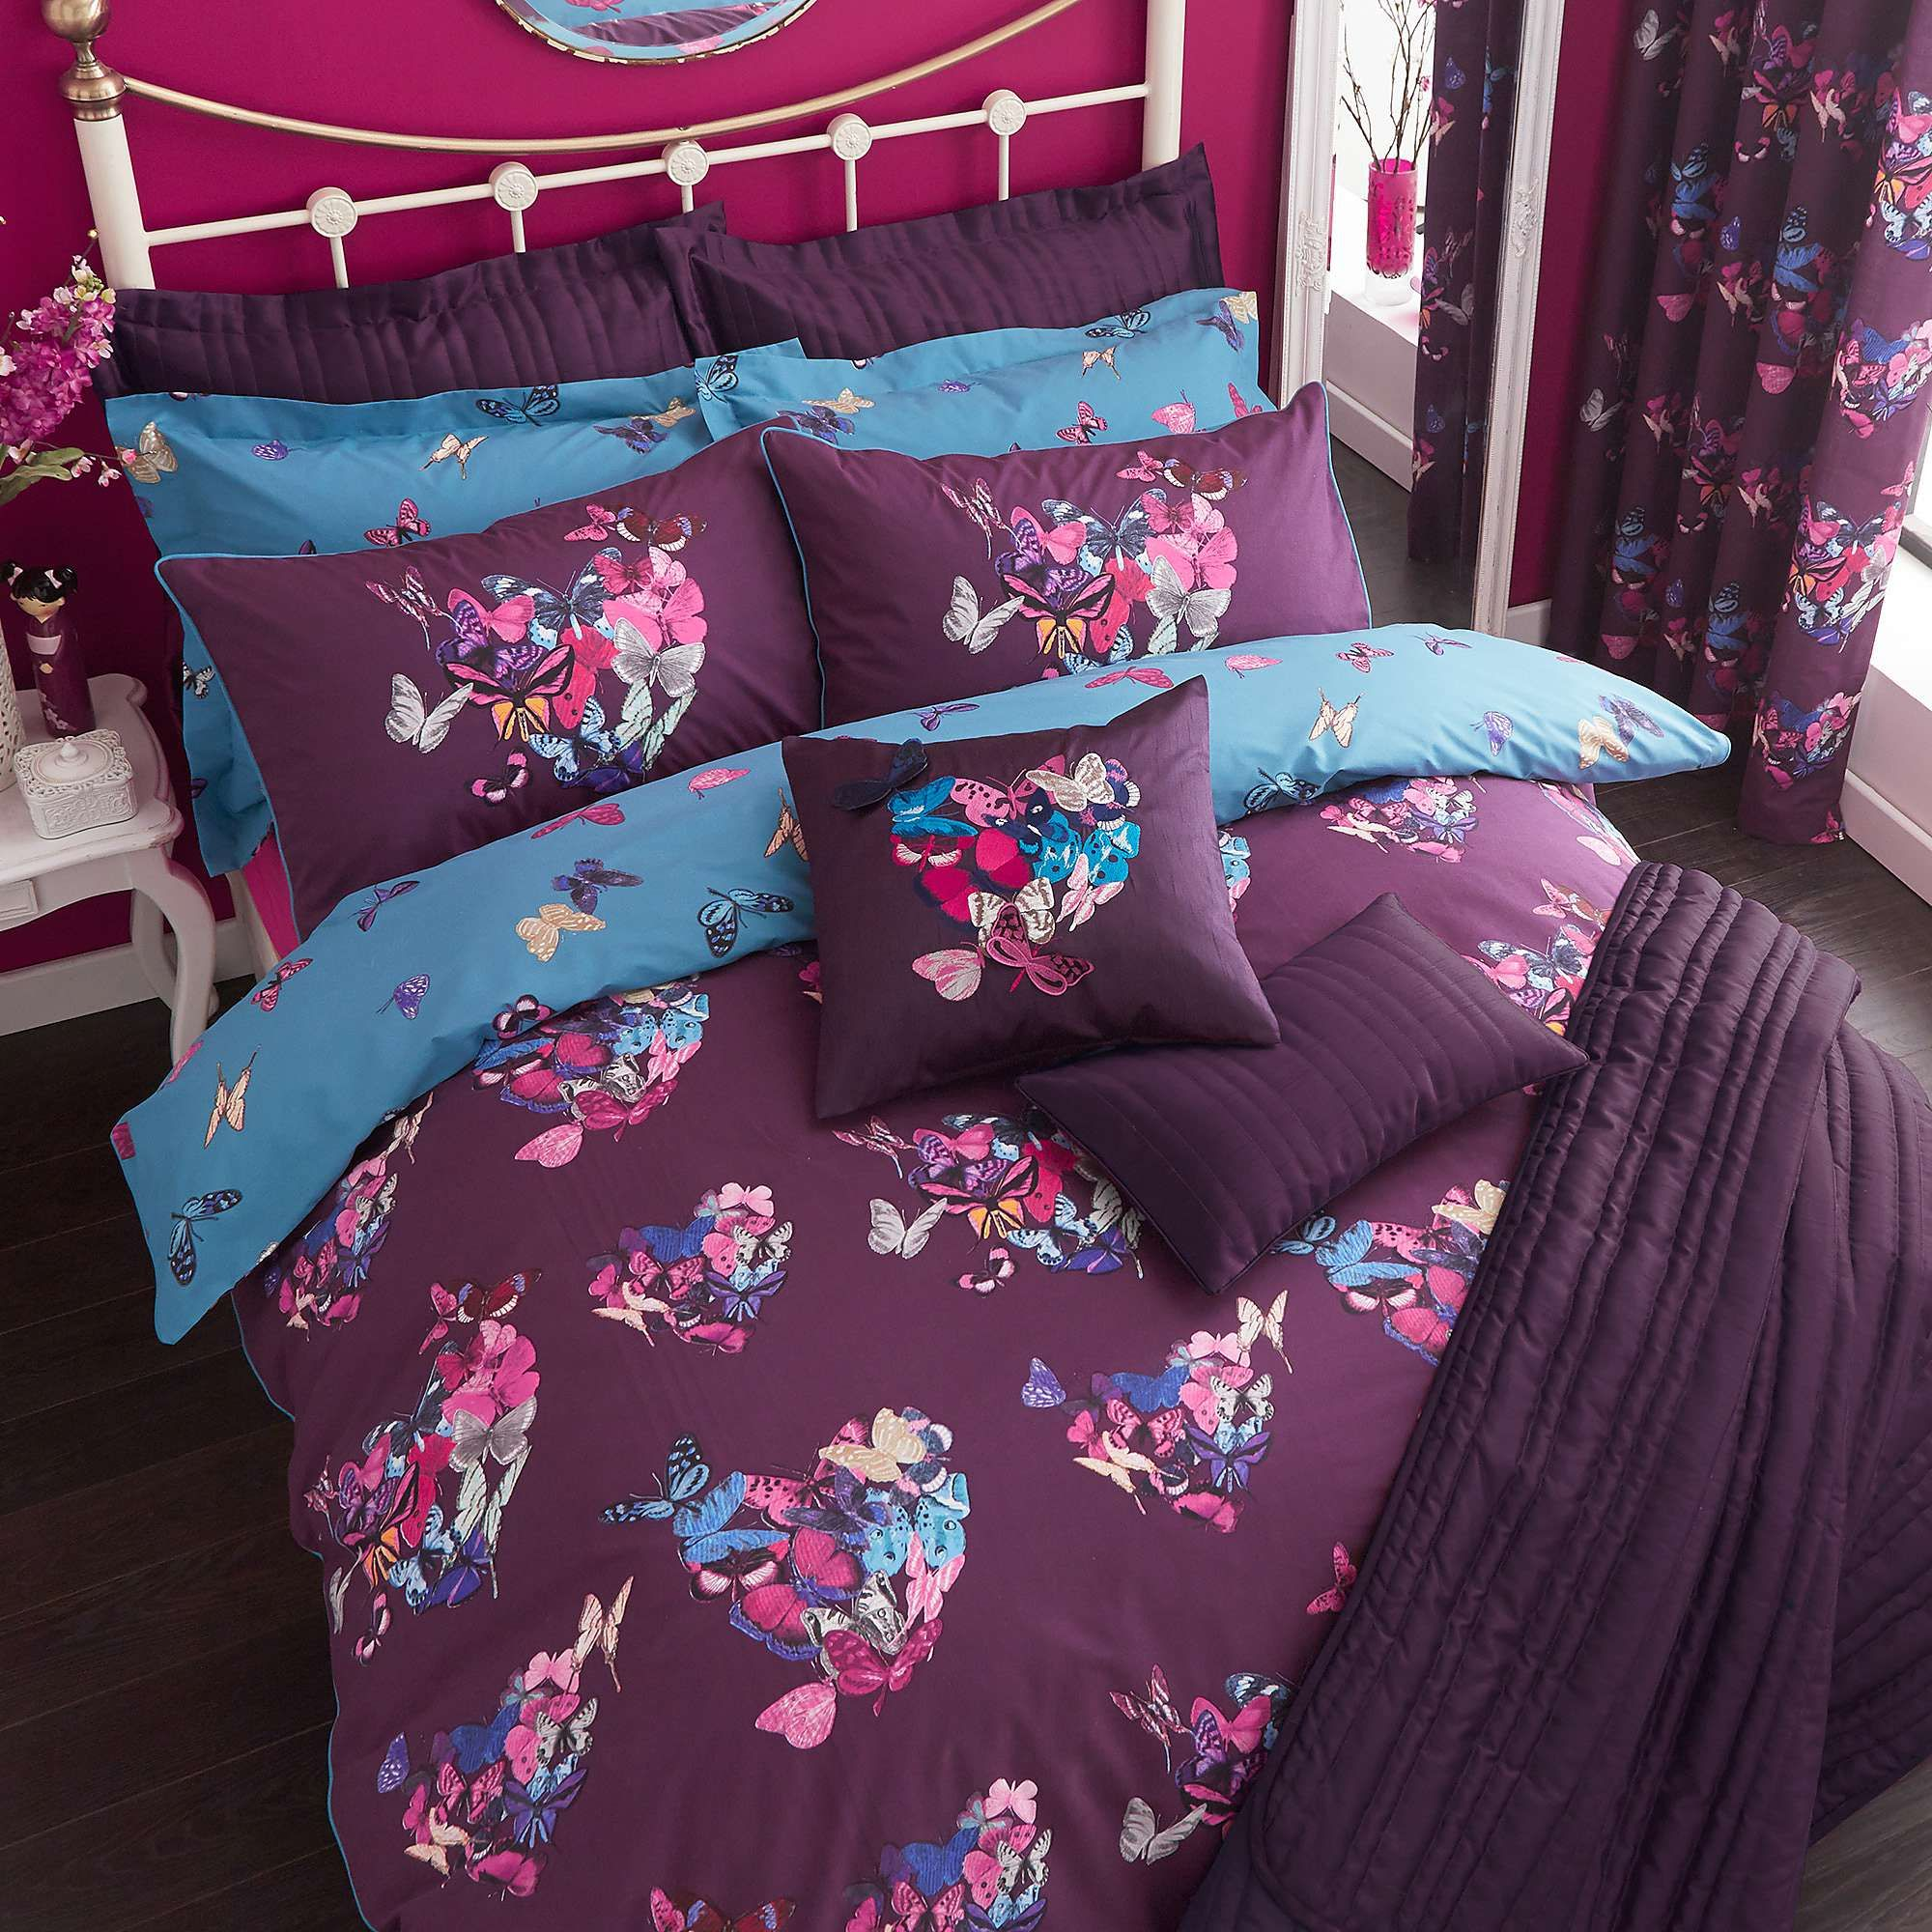 cotton grey most bag set box sets coverlets girl gray comforter plum queen duvet king quilt bedroom purple pink quilts full and bedding lavender black in magnificent cover twin magic